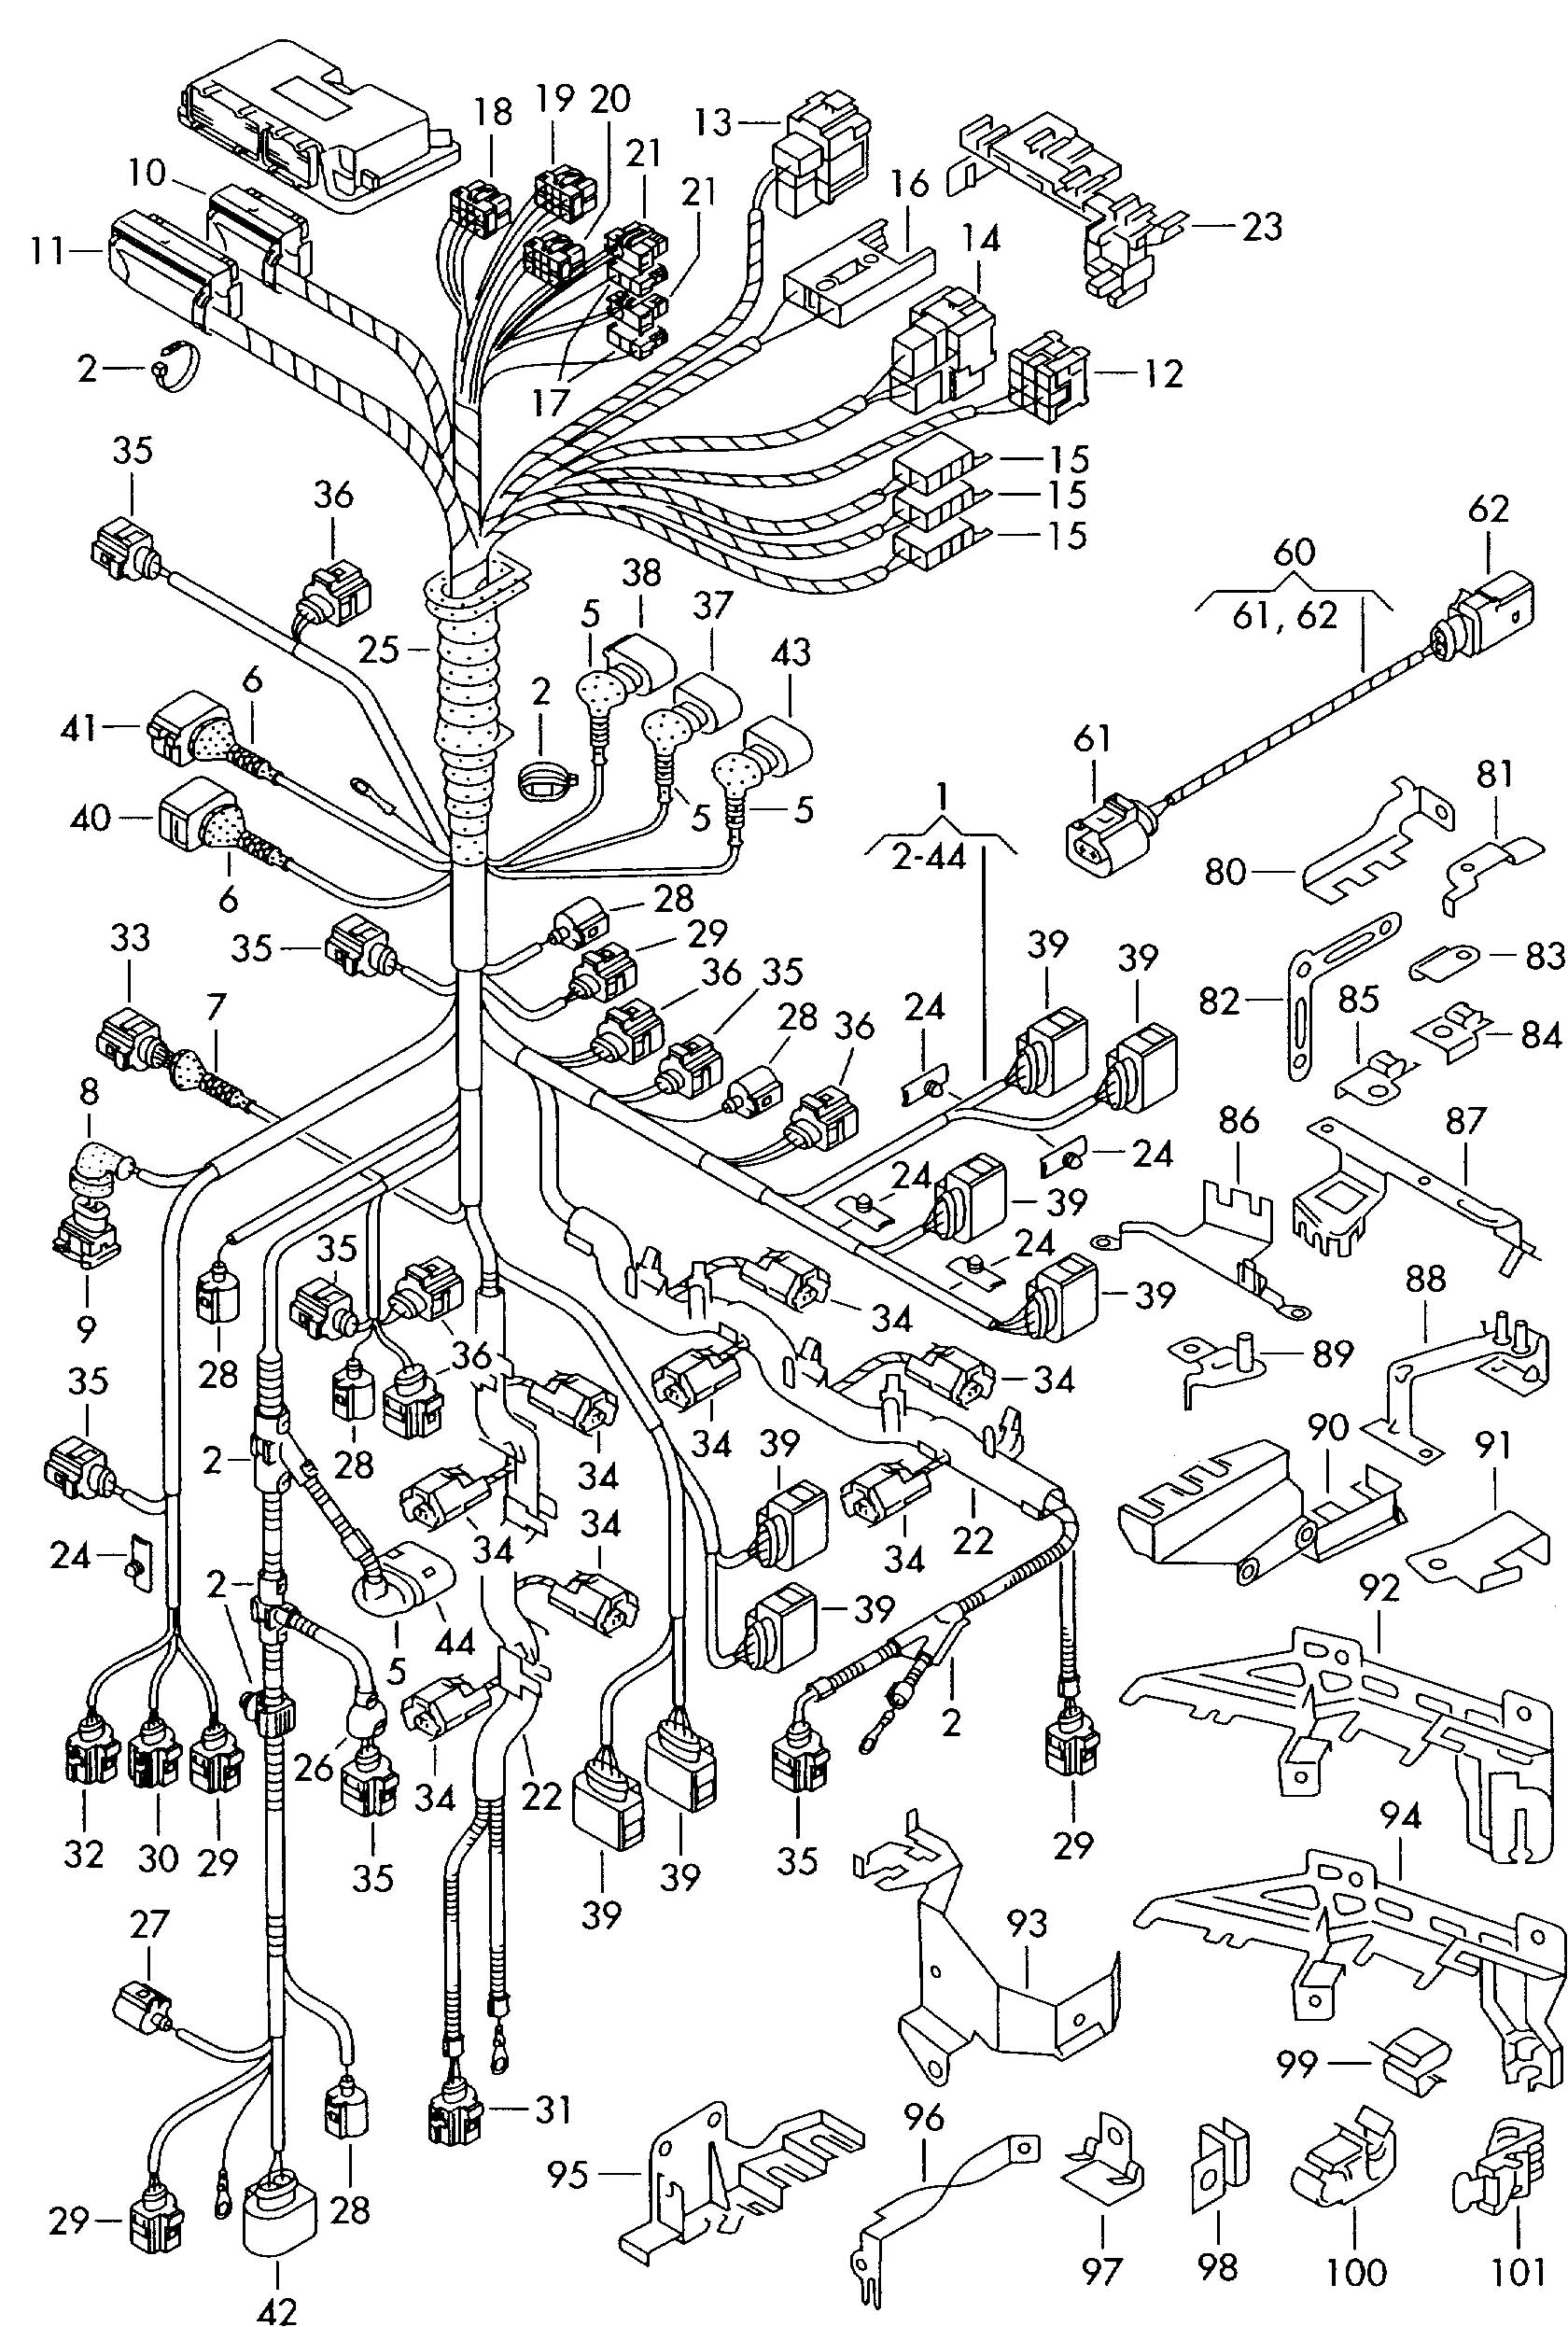 Single parts which do not adapter wiring harness